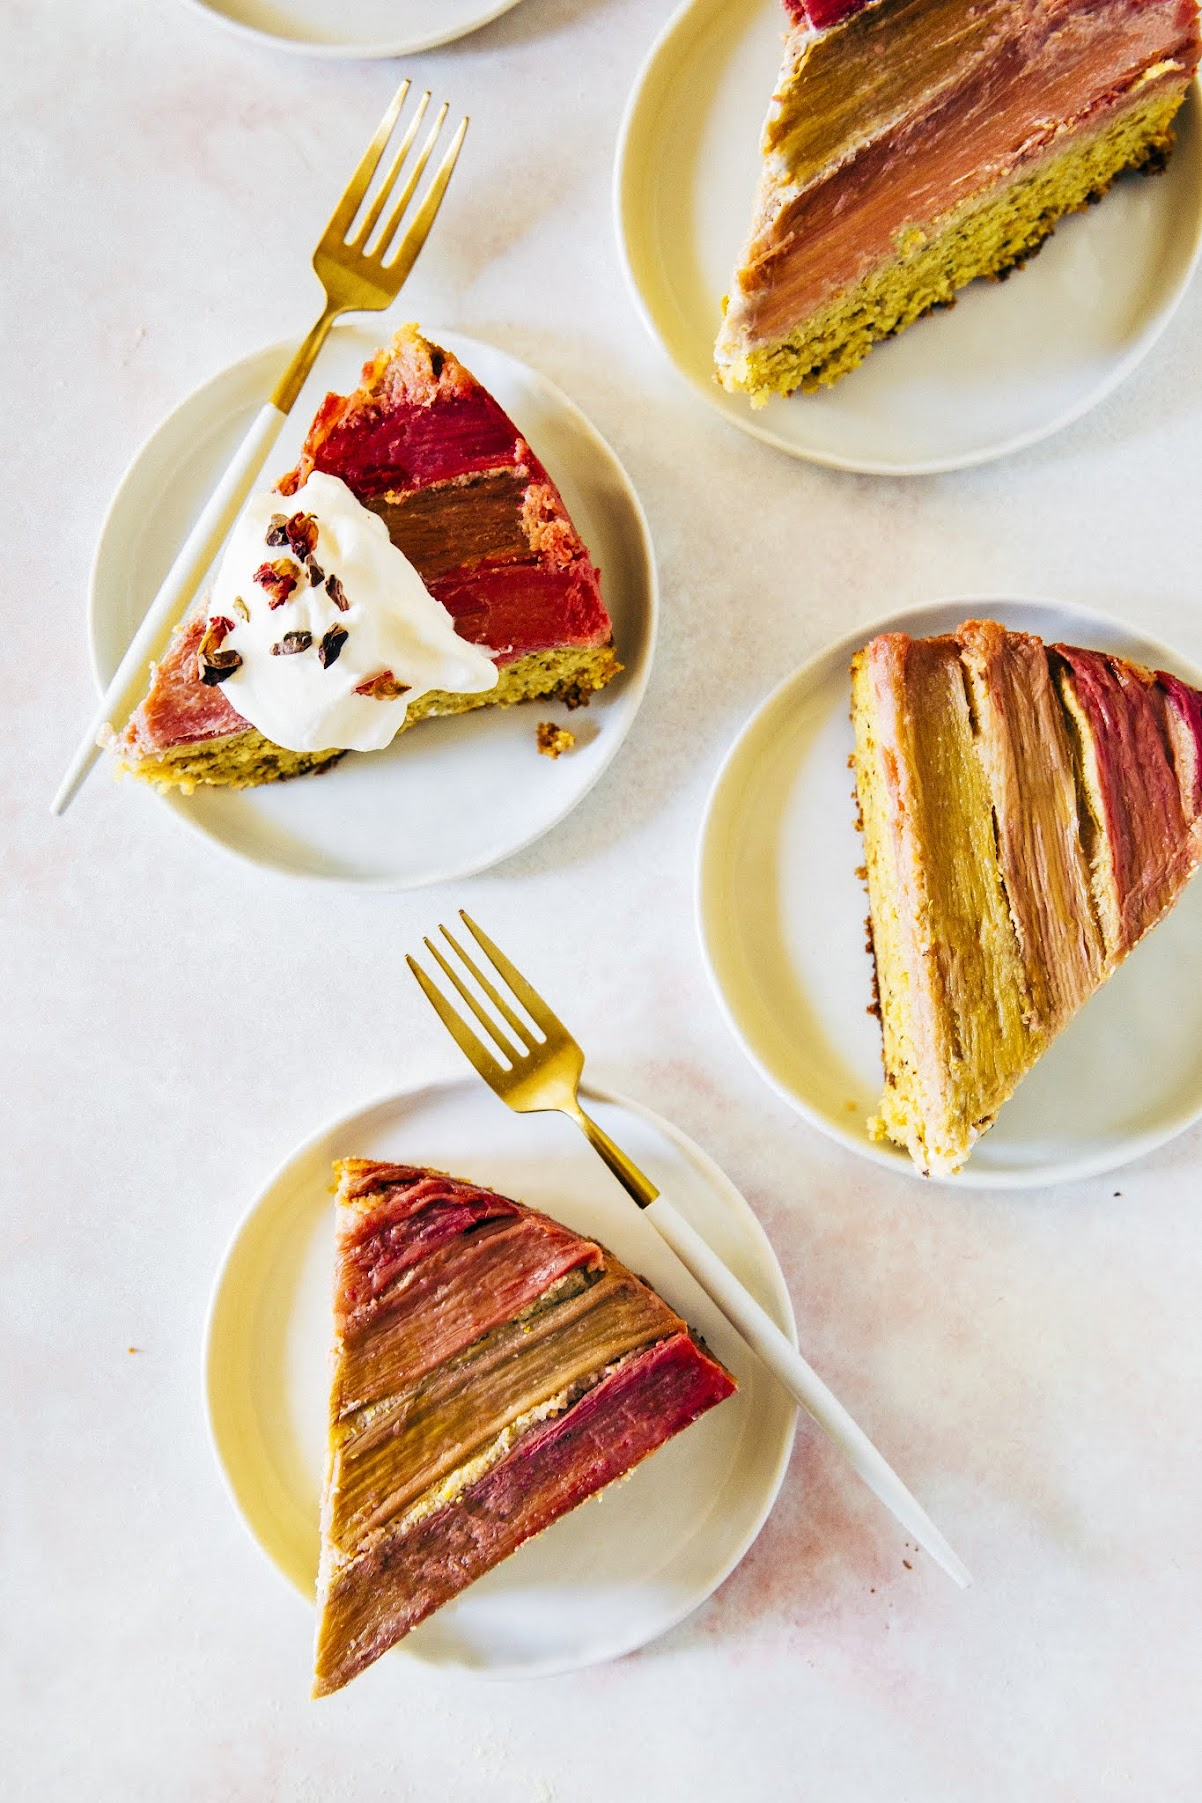 pistachio, rose water, and rhubarb semolina cake